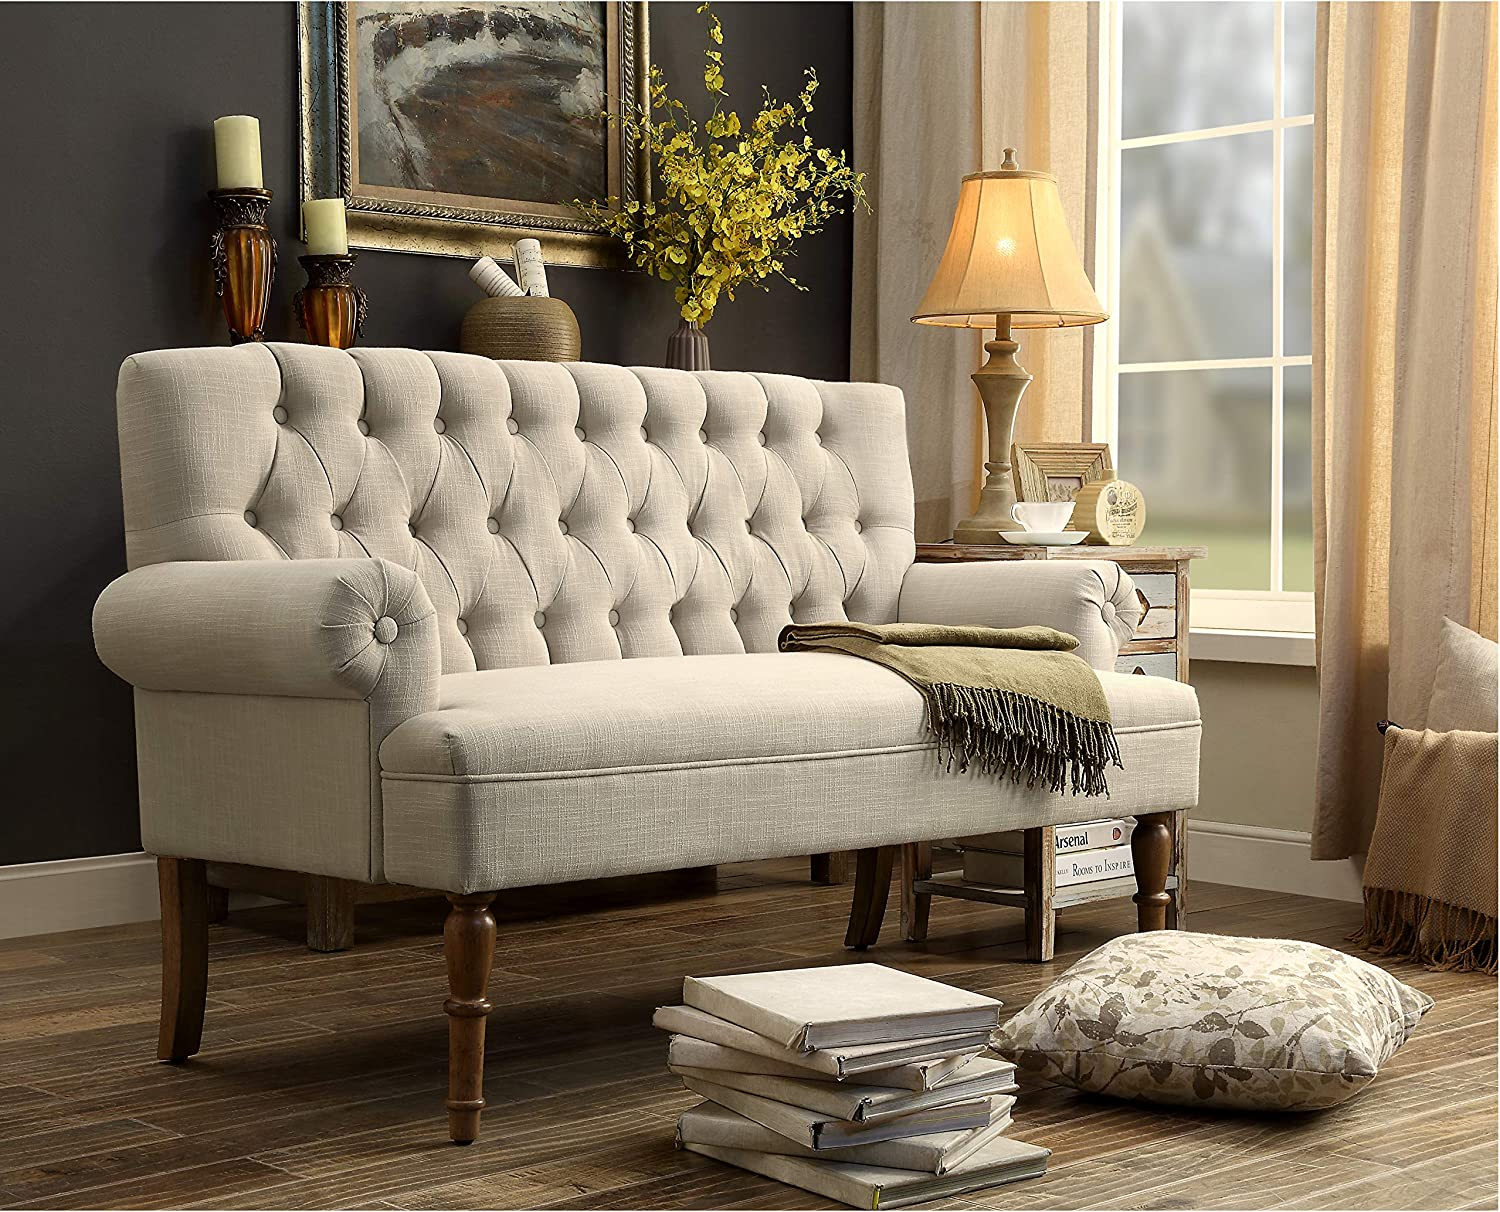 Tufted loveseat in cream is an affordable option for a classic or French inspired living room with elegant style. #loveseat #settee #frenchcountry #furniture #livingroom